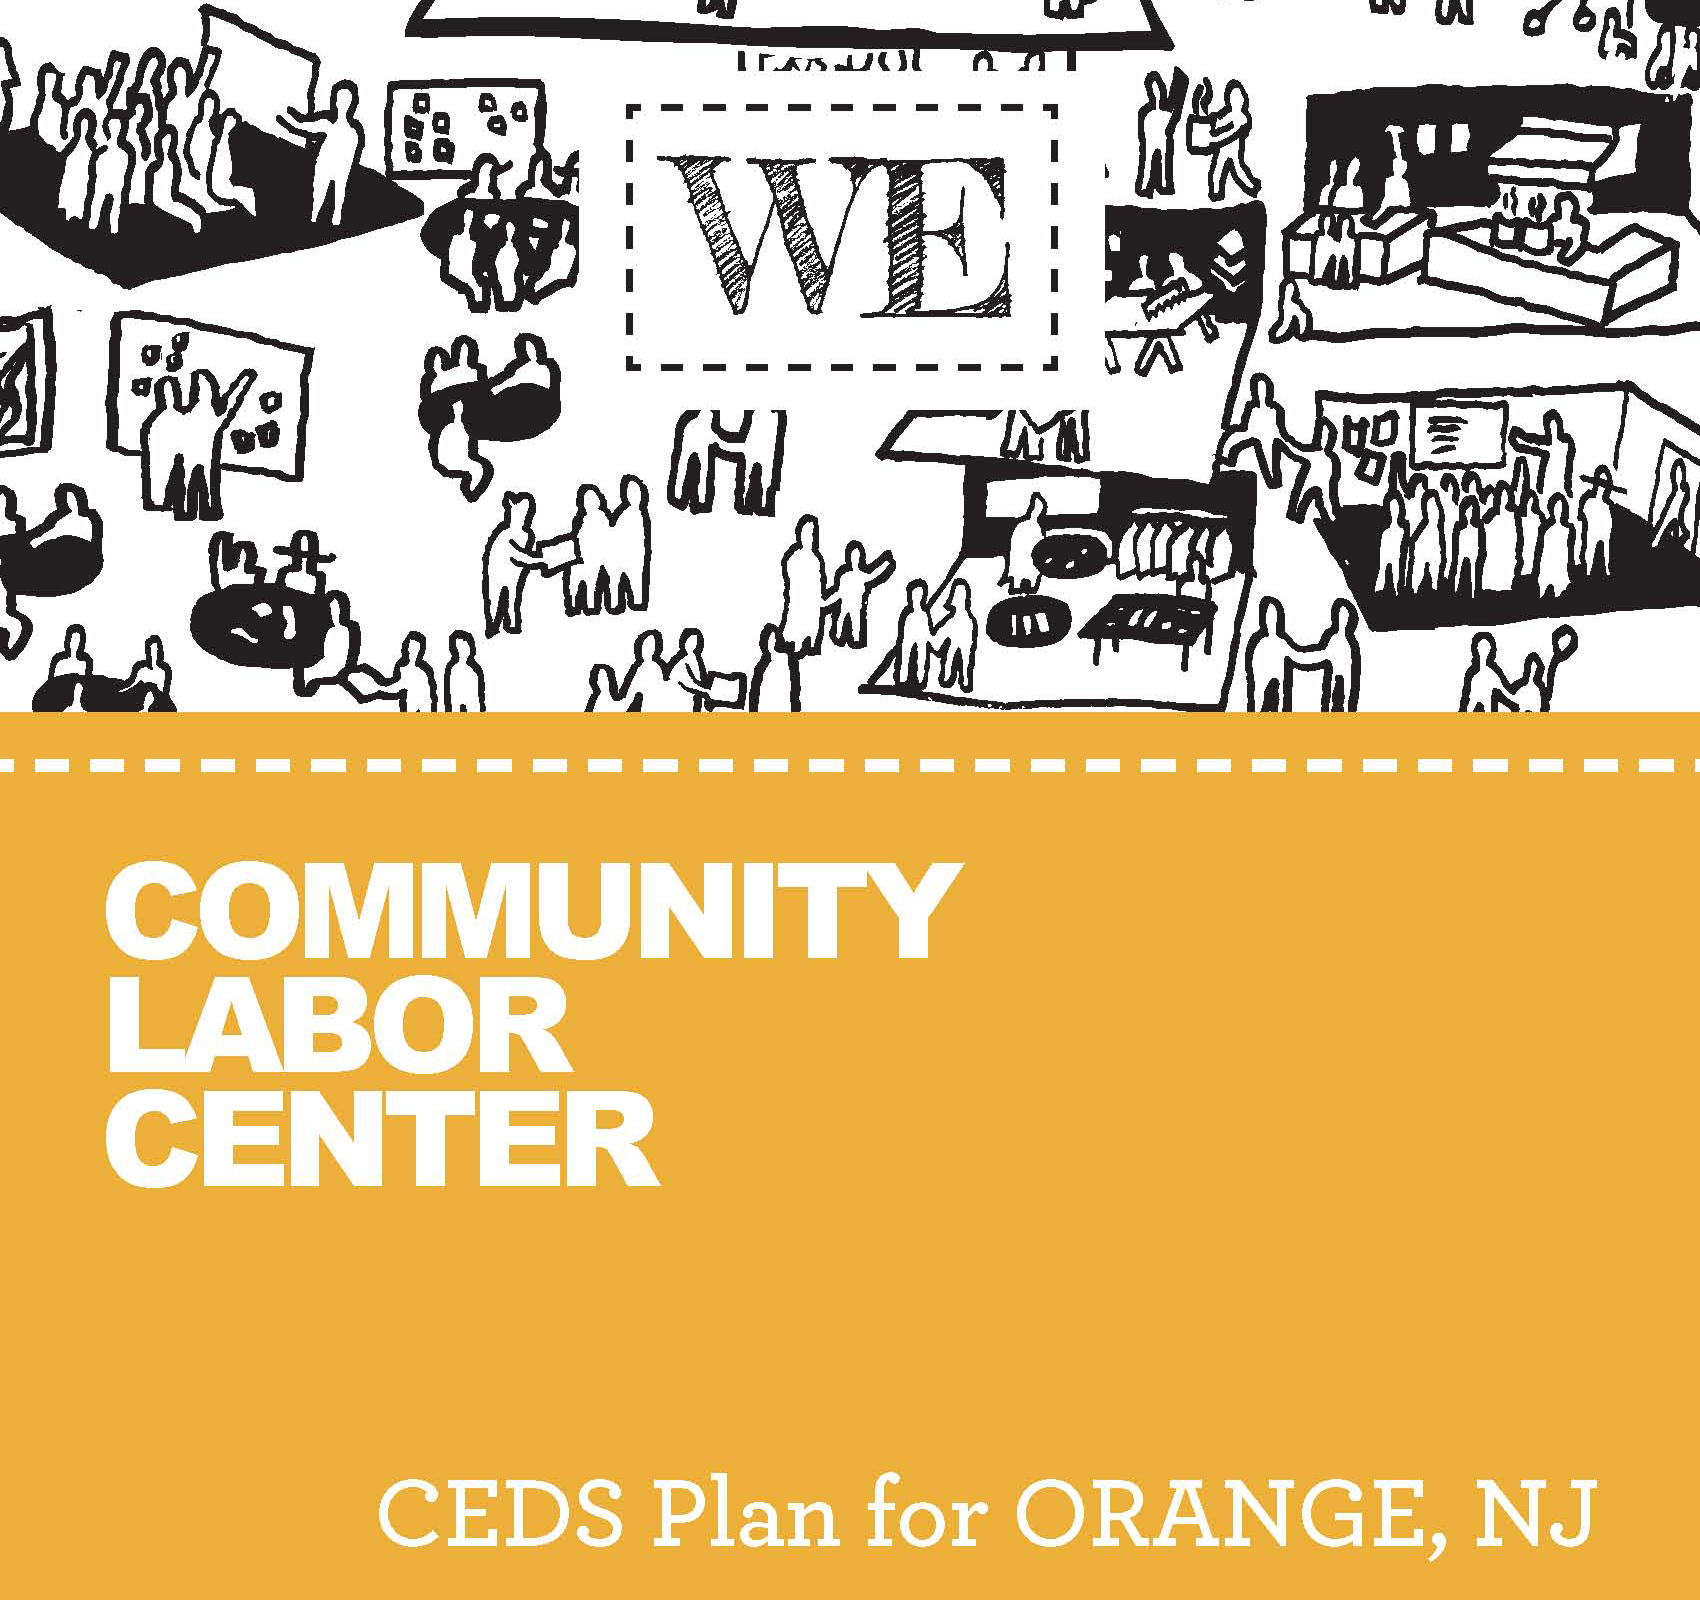 AN INNOVATIVE PLACE TO BRING PEOPLE TOGETHER AROUND GENERATING LOCAL ECONOMIES.